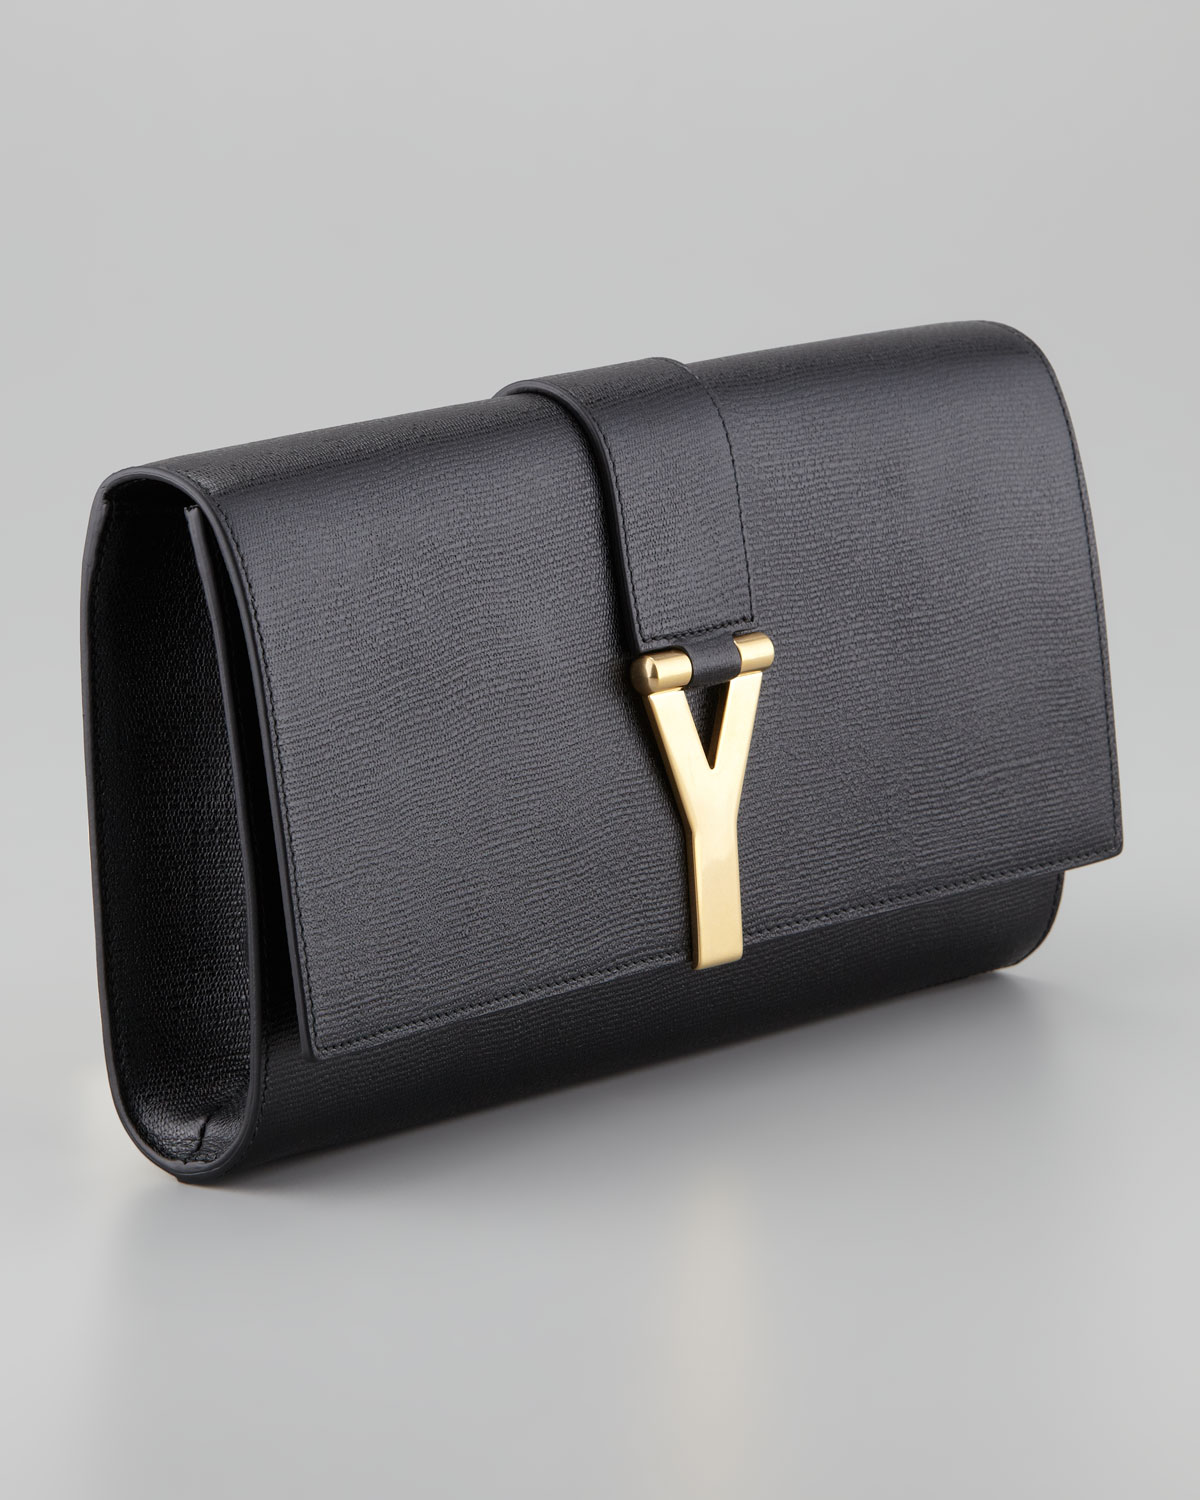 ysl black tote - yves saint laurent chyc clutch